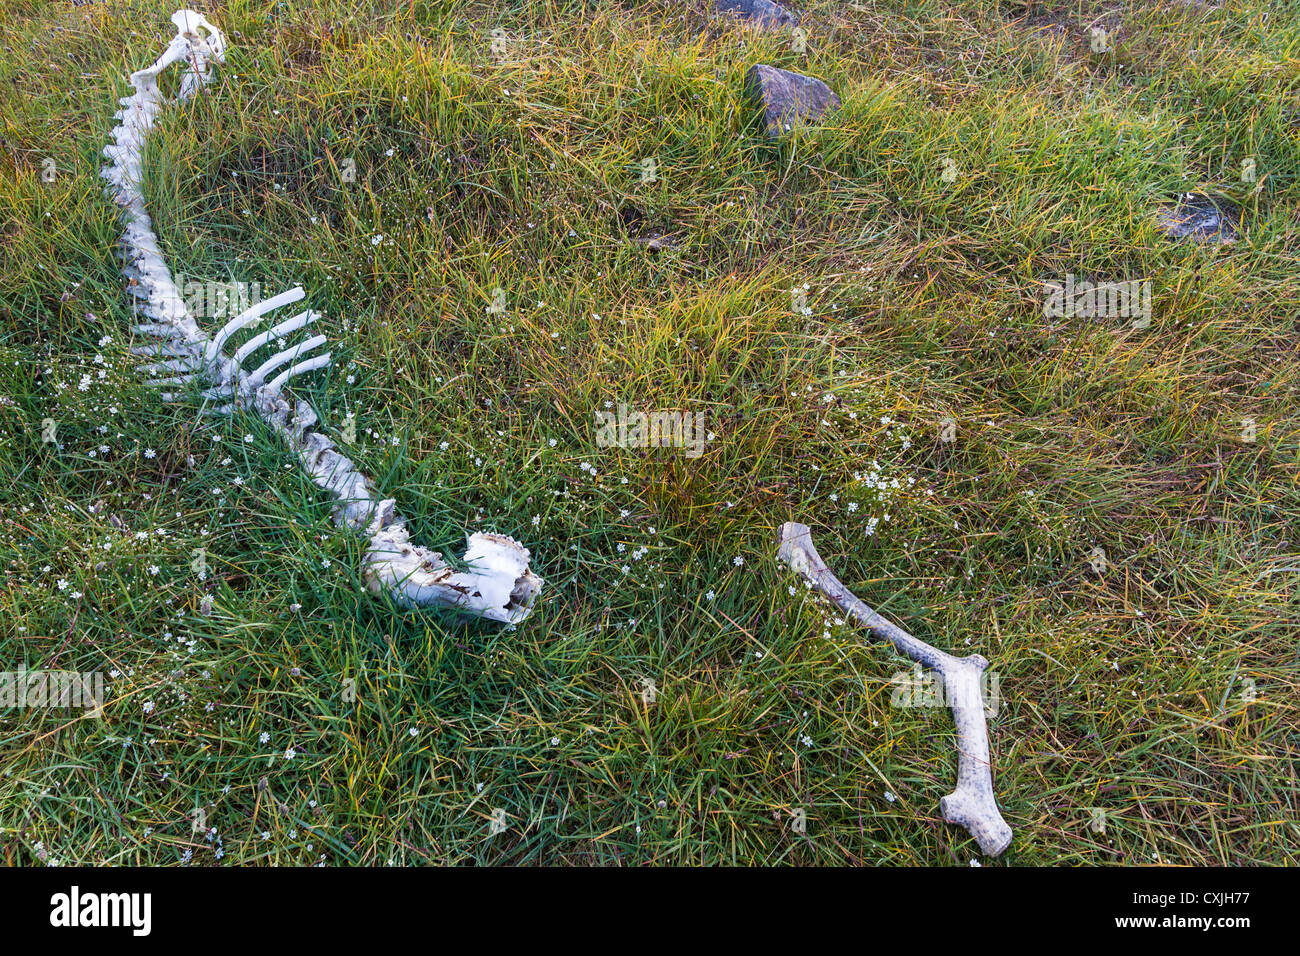 Remains of caribou lie in tundra grass on the coast of northern Greenland. - Stock Image